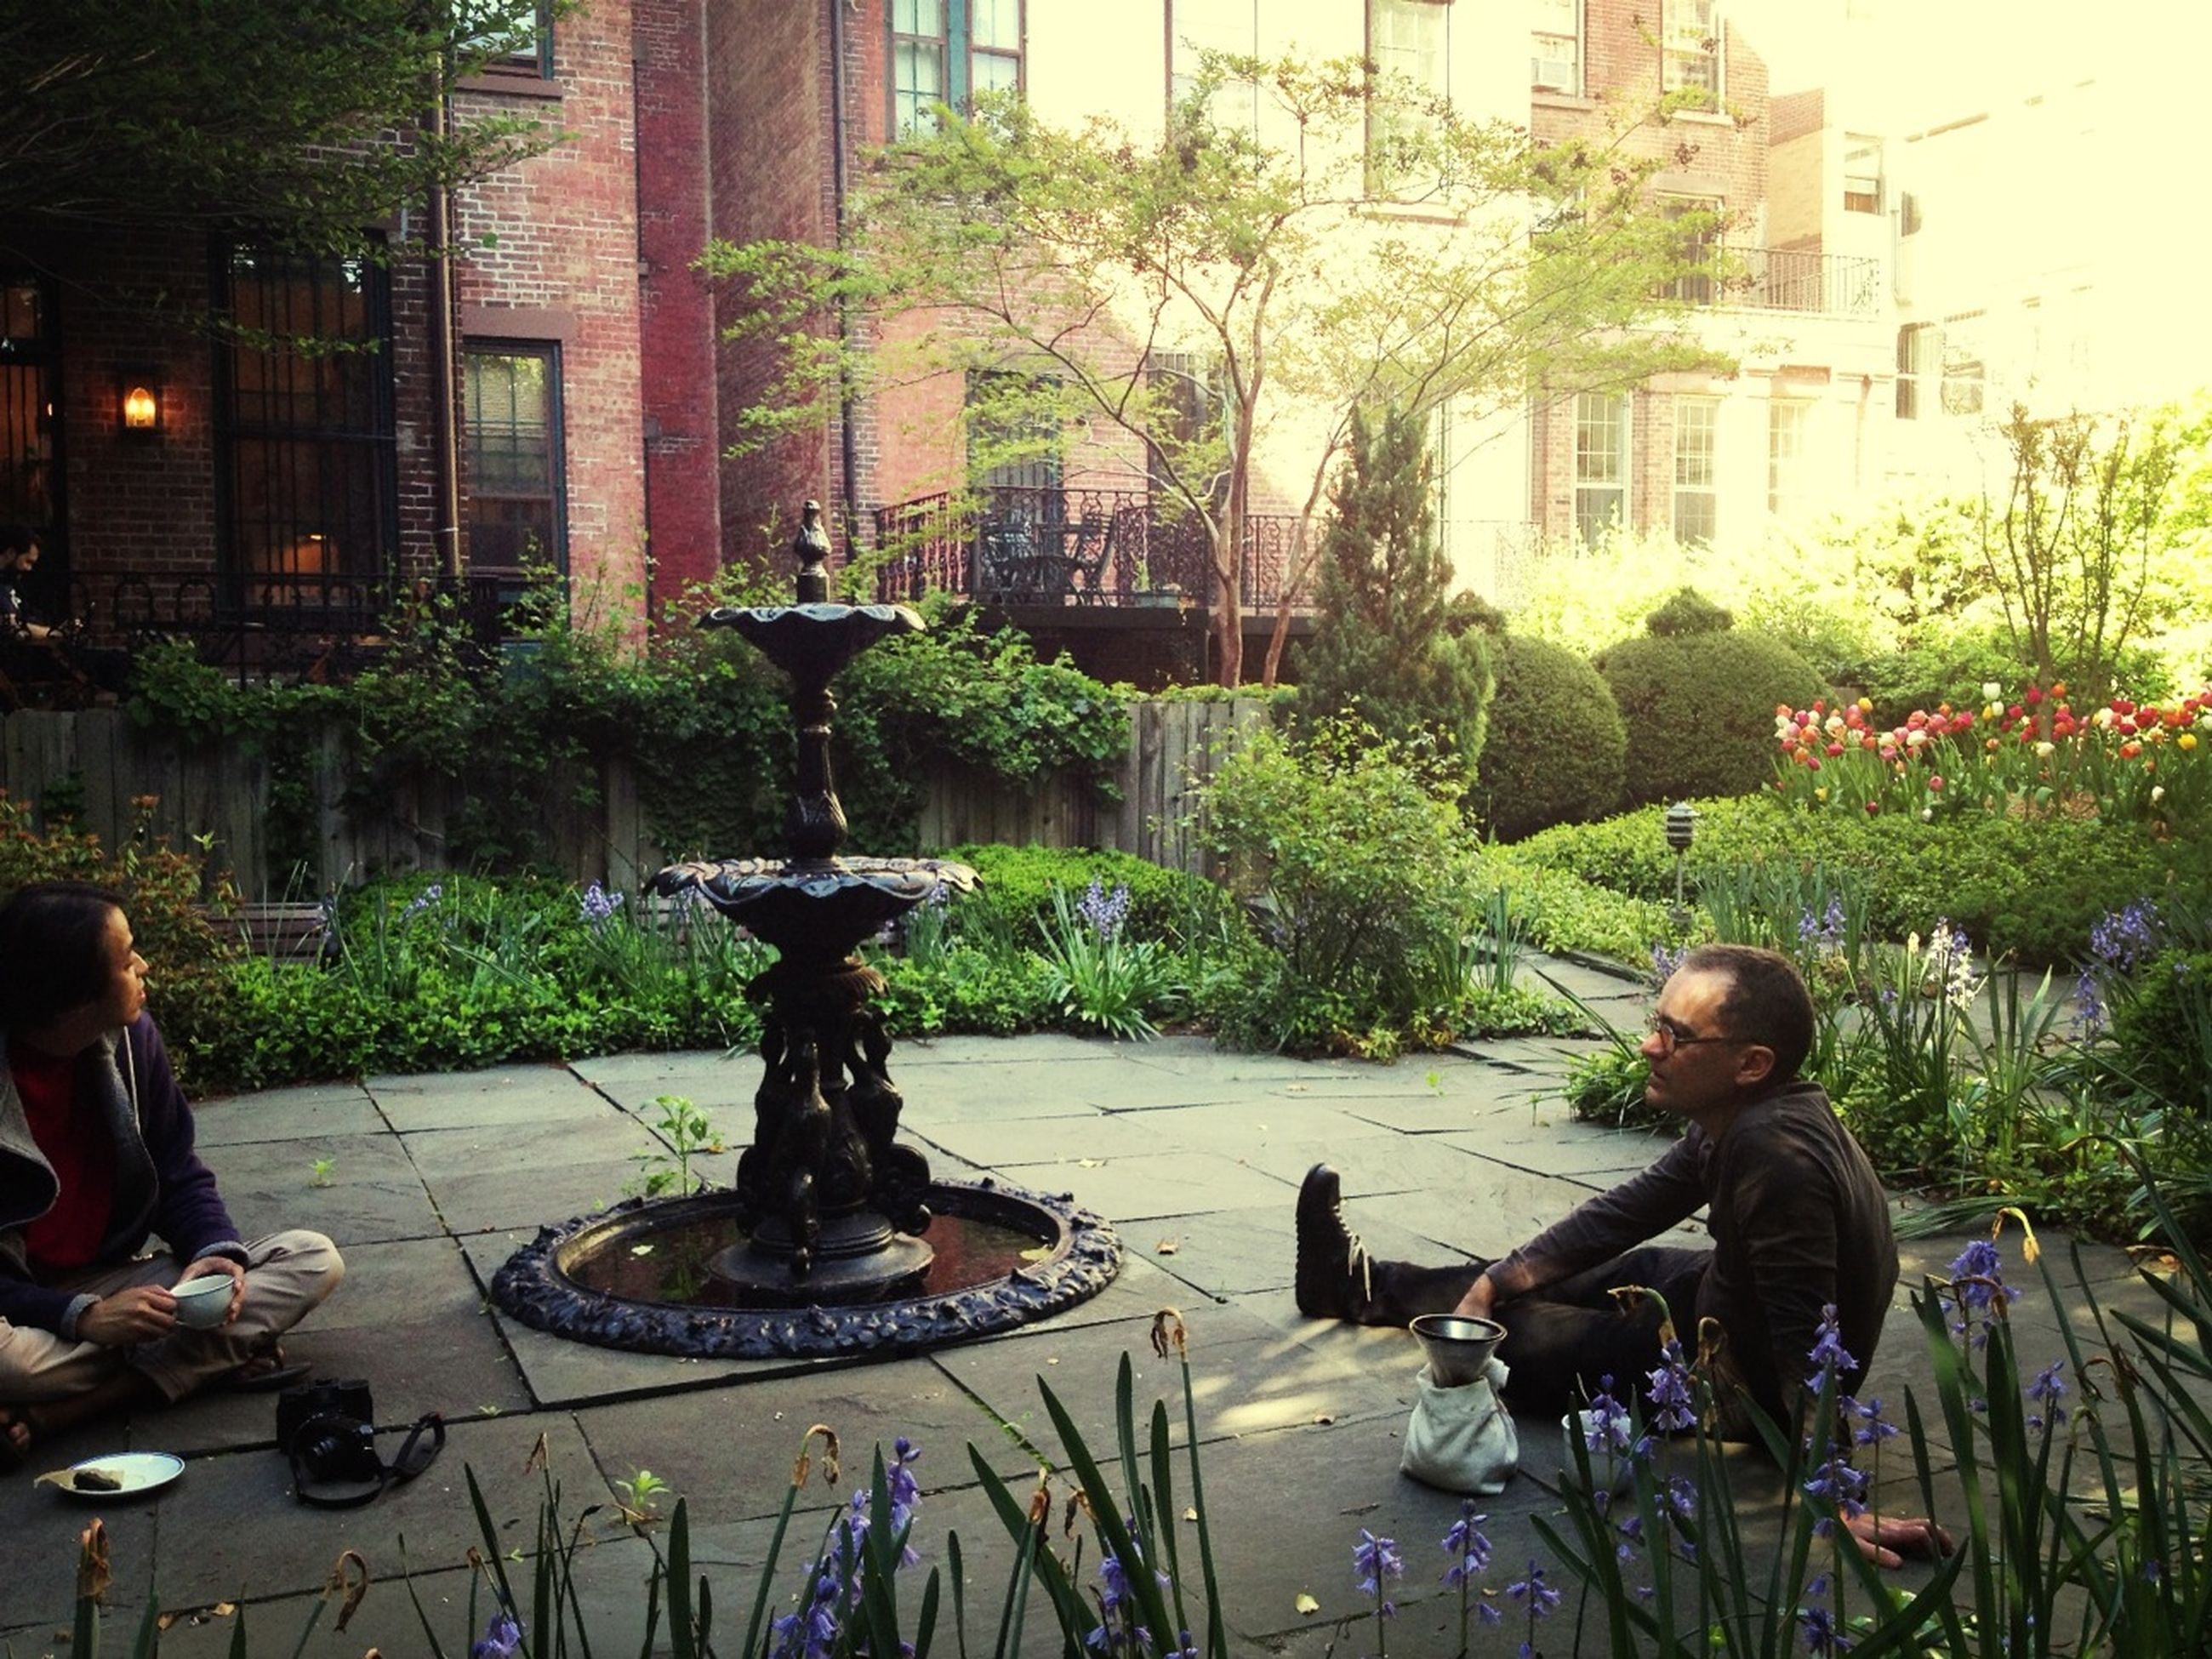 lifestyles, leisure activity, table, sitting, architecture, building exterior, built structure, tree, men, chair, casual clothing, person, potted plant, food and drink, holding, plant, day, incidental people